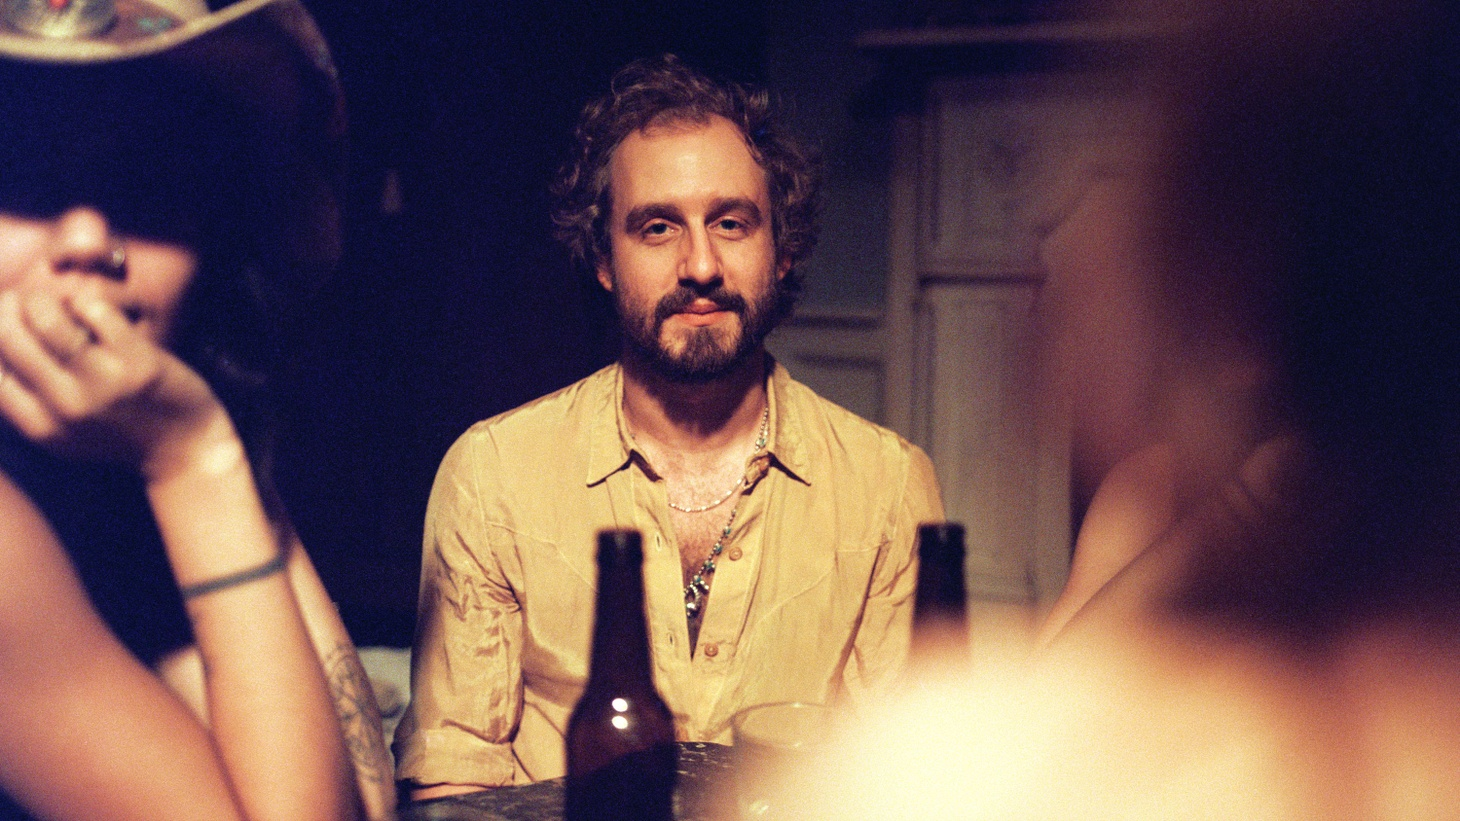 Phosphorescent were on tour for most of 2013. This dazzling rock band culled live tracks stretching back to their early days and pieced together this live record.